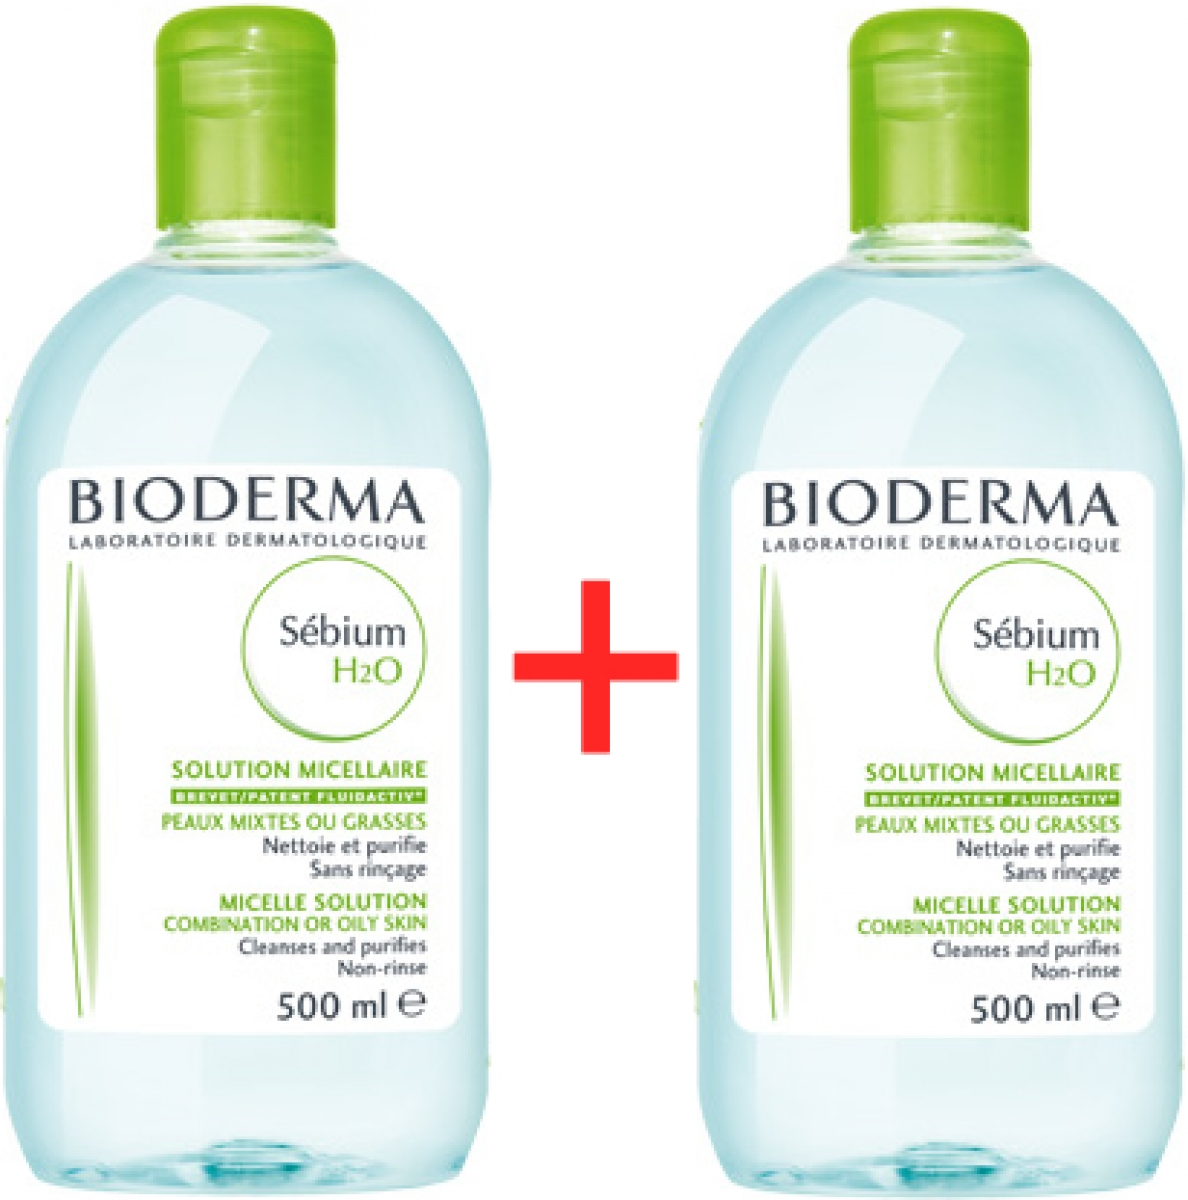 BIODERMA Sebium H2O 500 ml 1 plus 1 ZDARMA